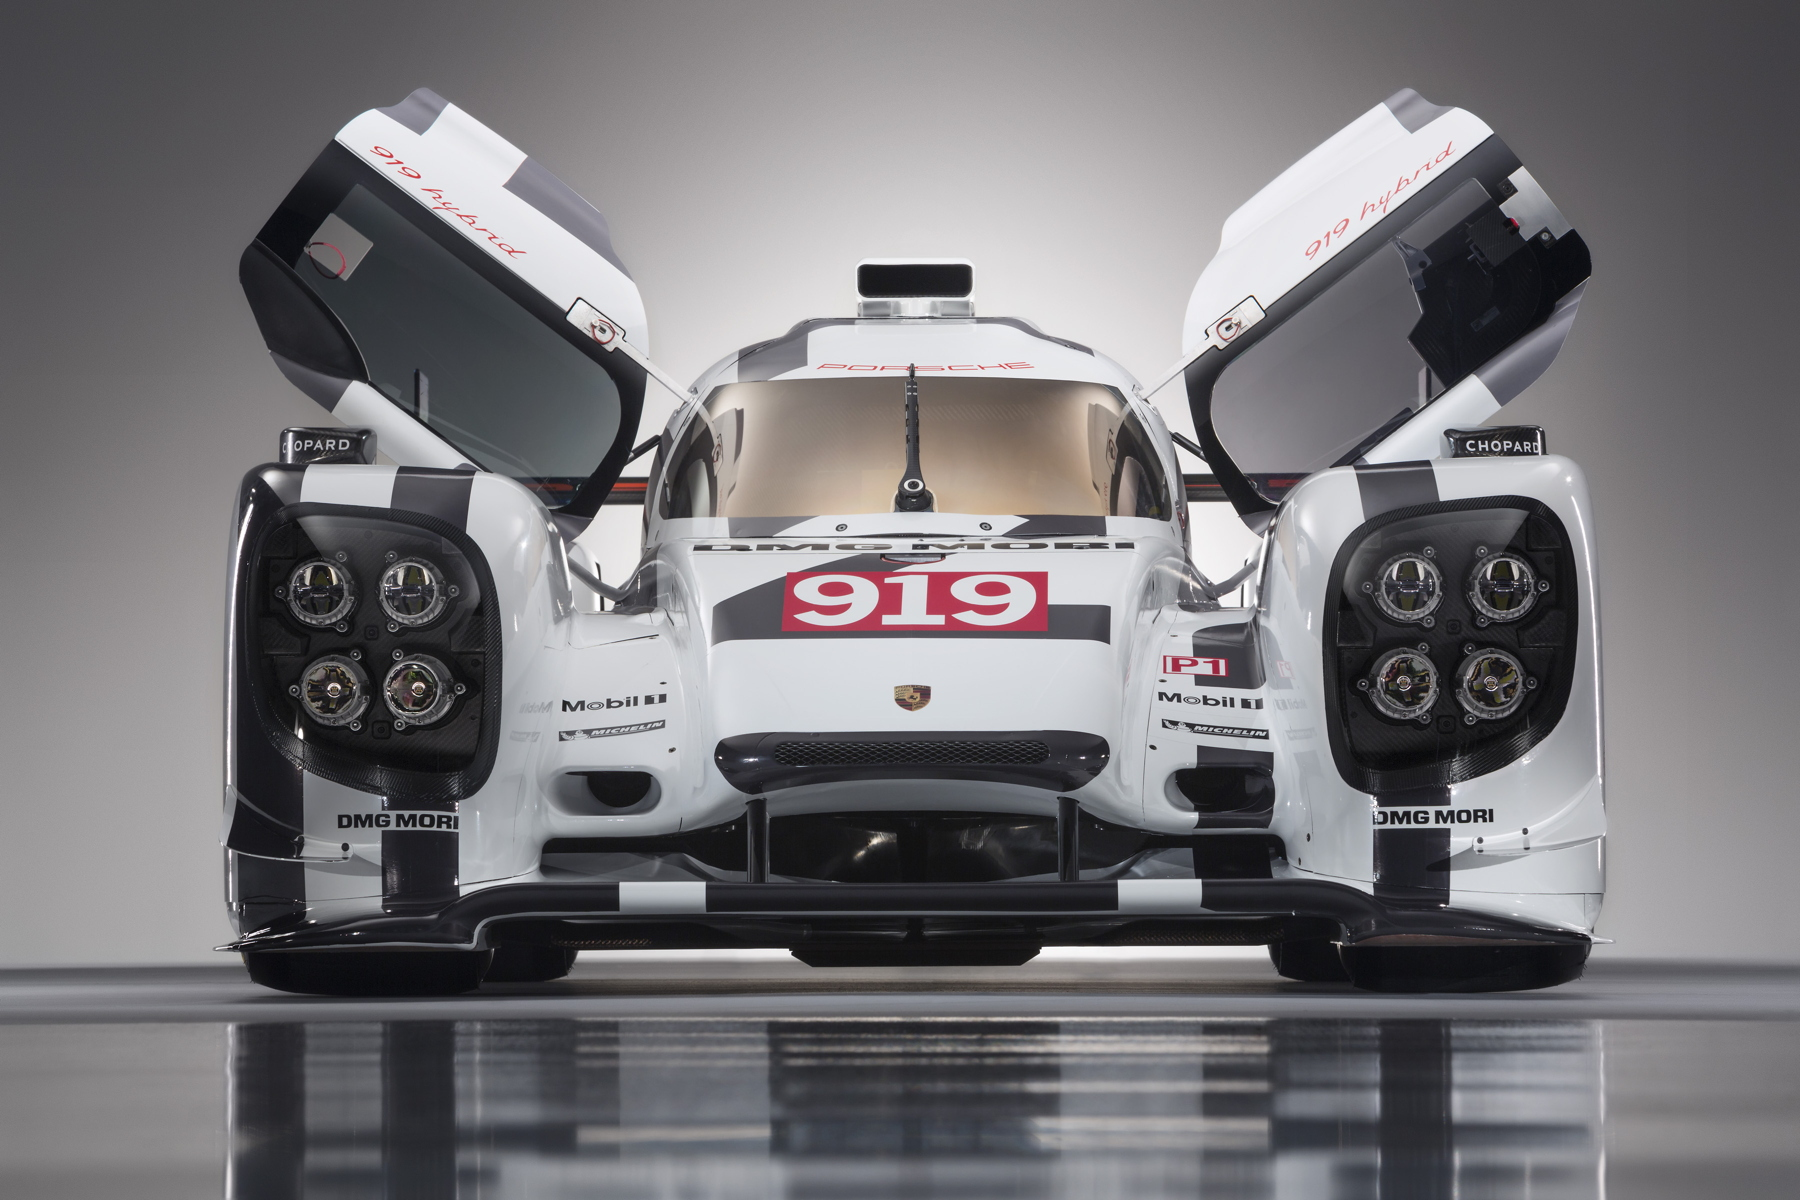 2014-Porsche-Motorsport-Porsche-919-Hybrid-Head-On-Doors-Open